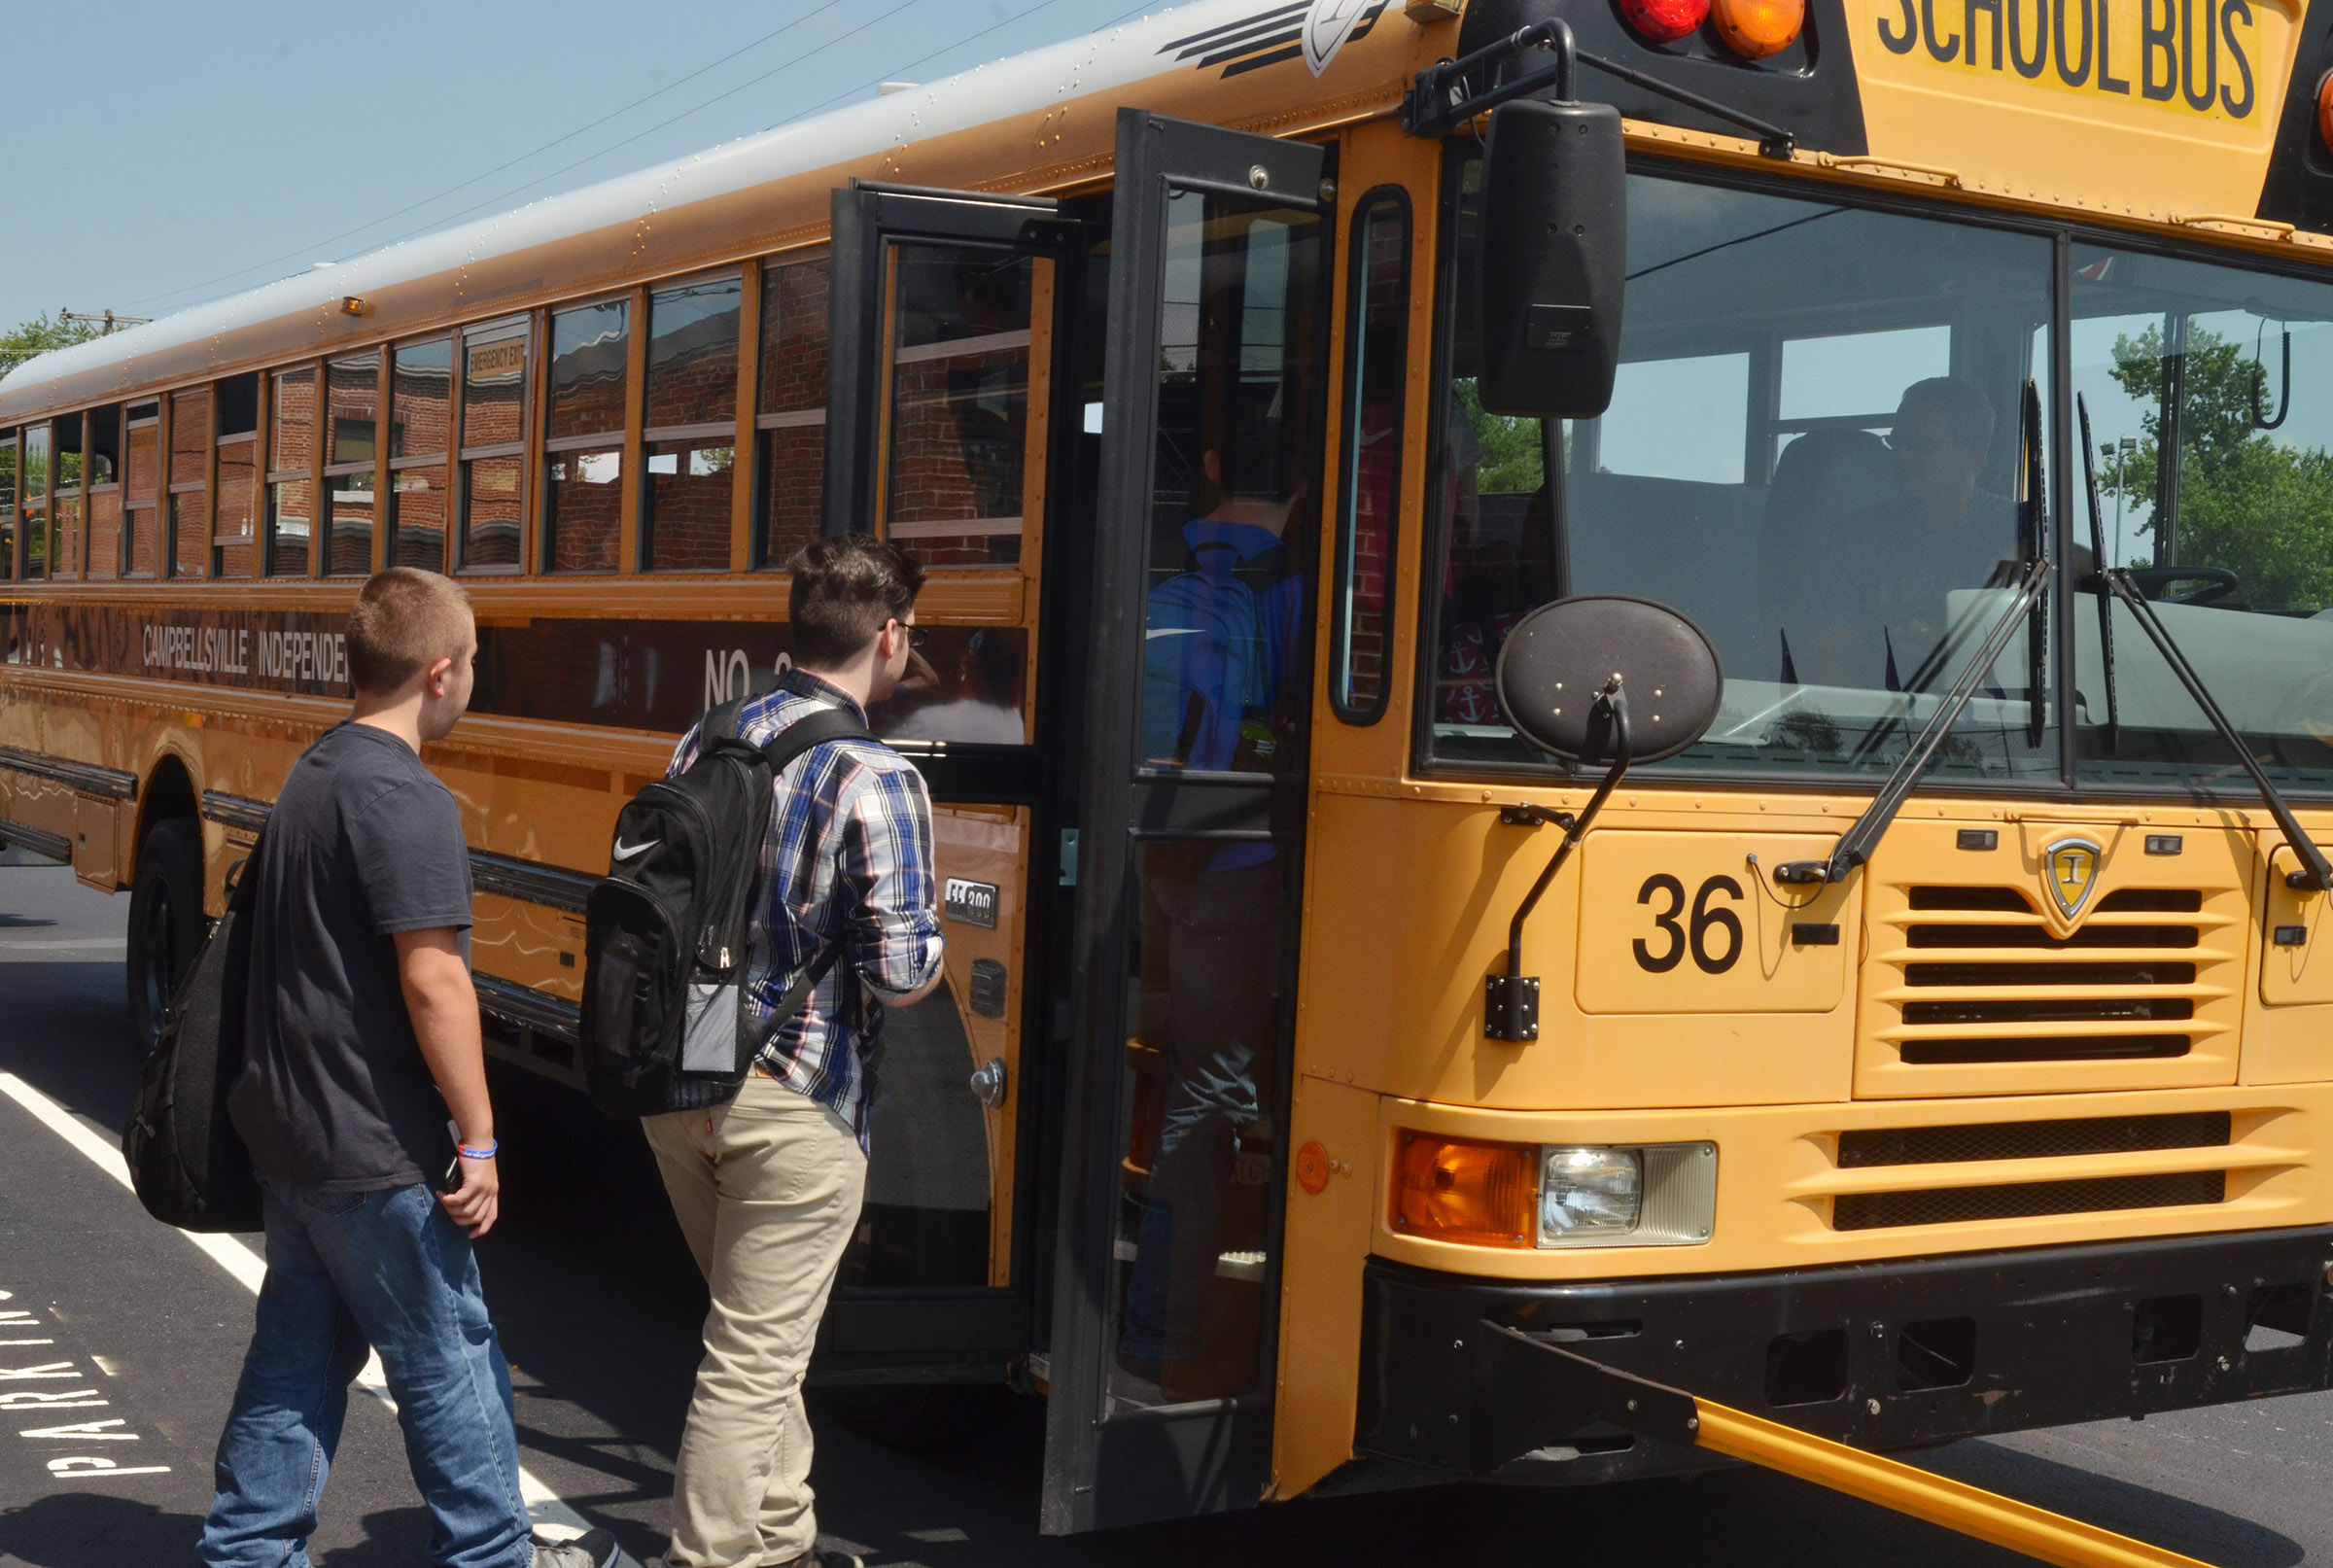 CIS students board the bus to go home after the first day of school.